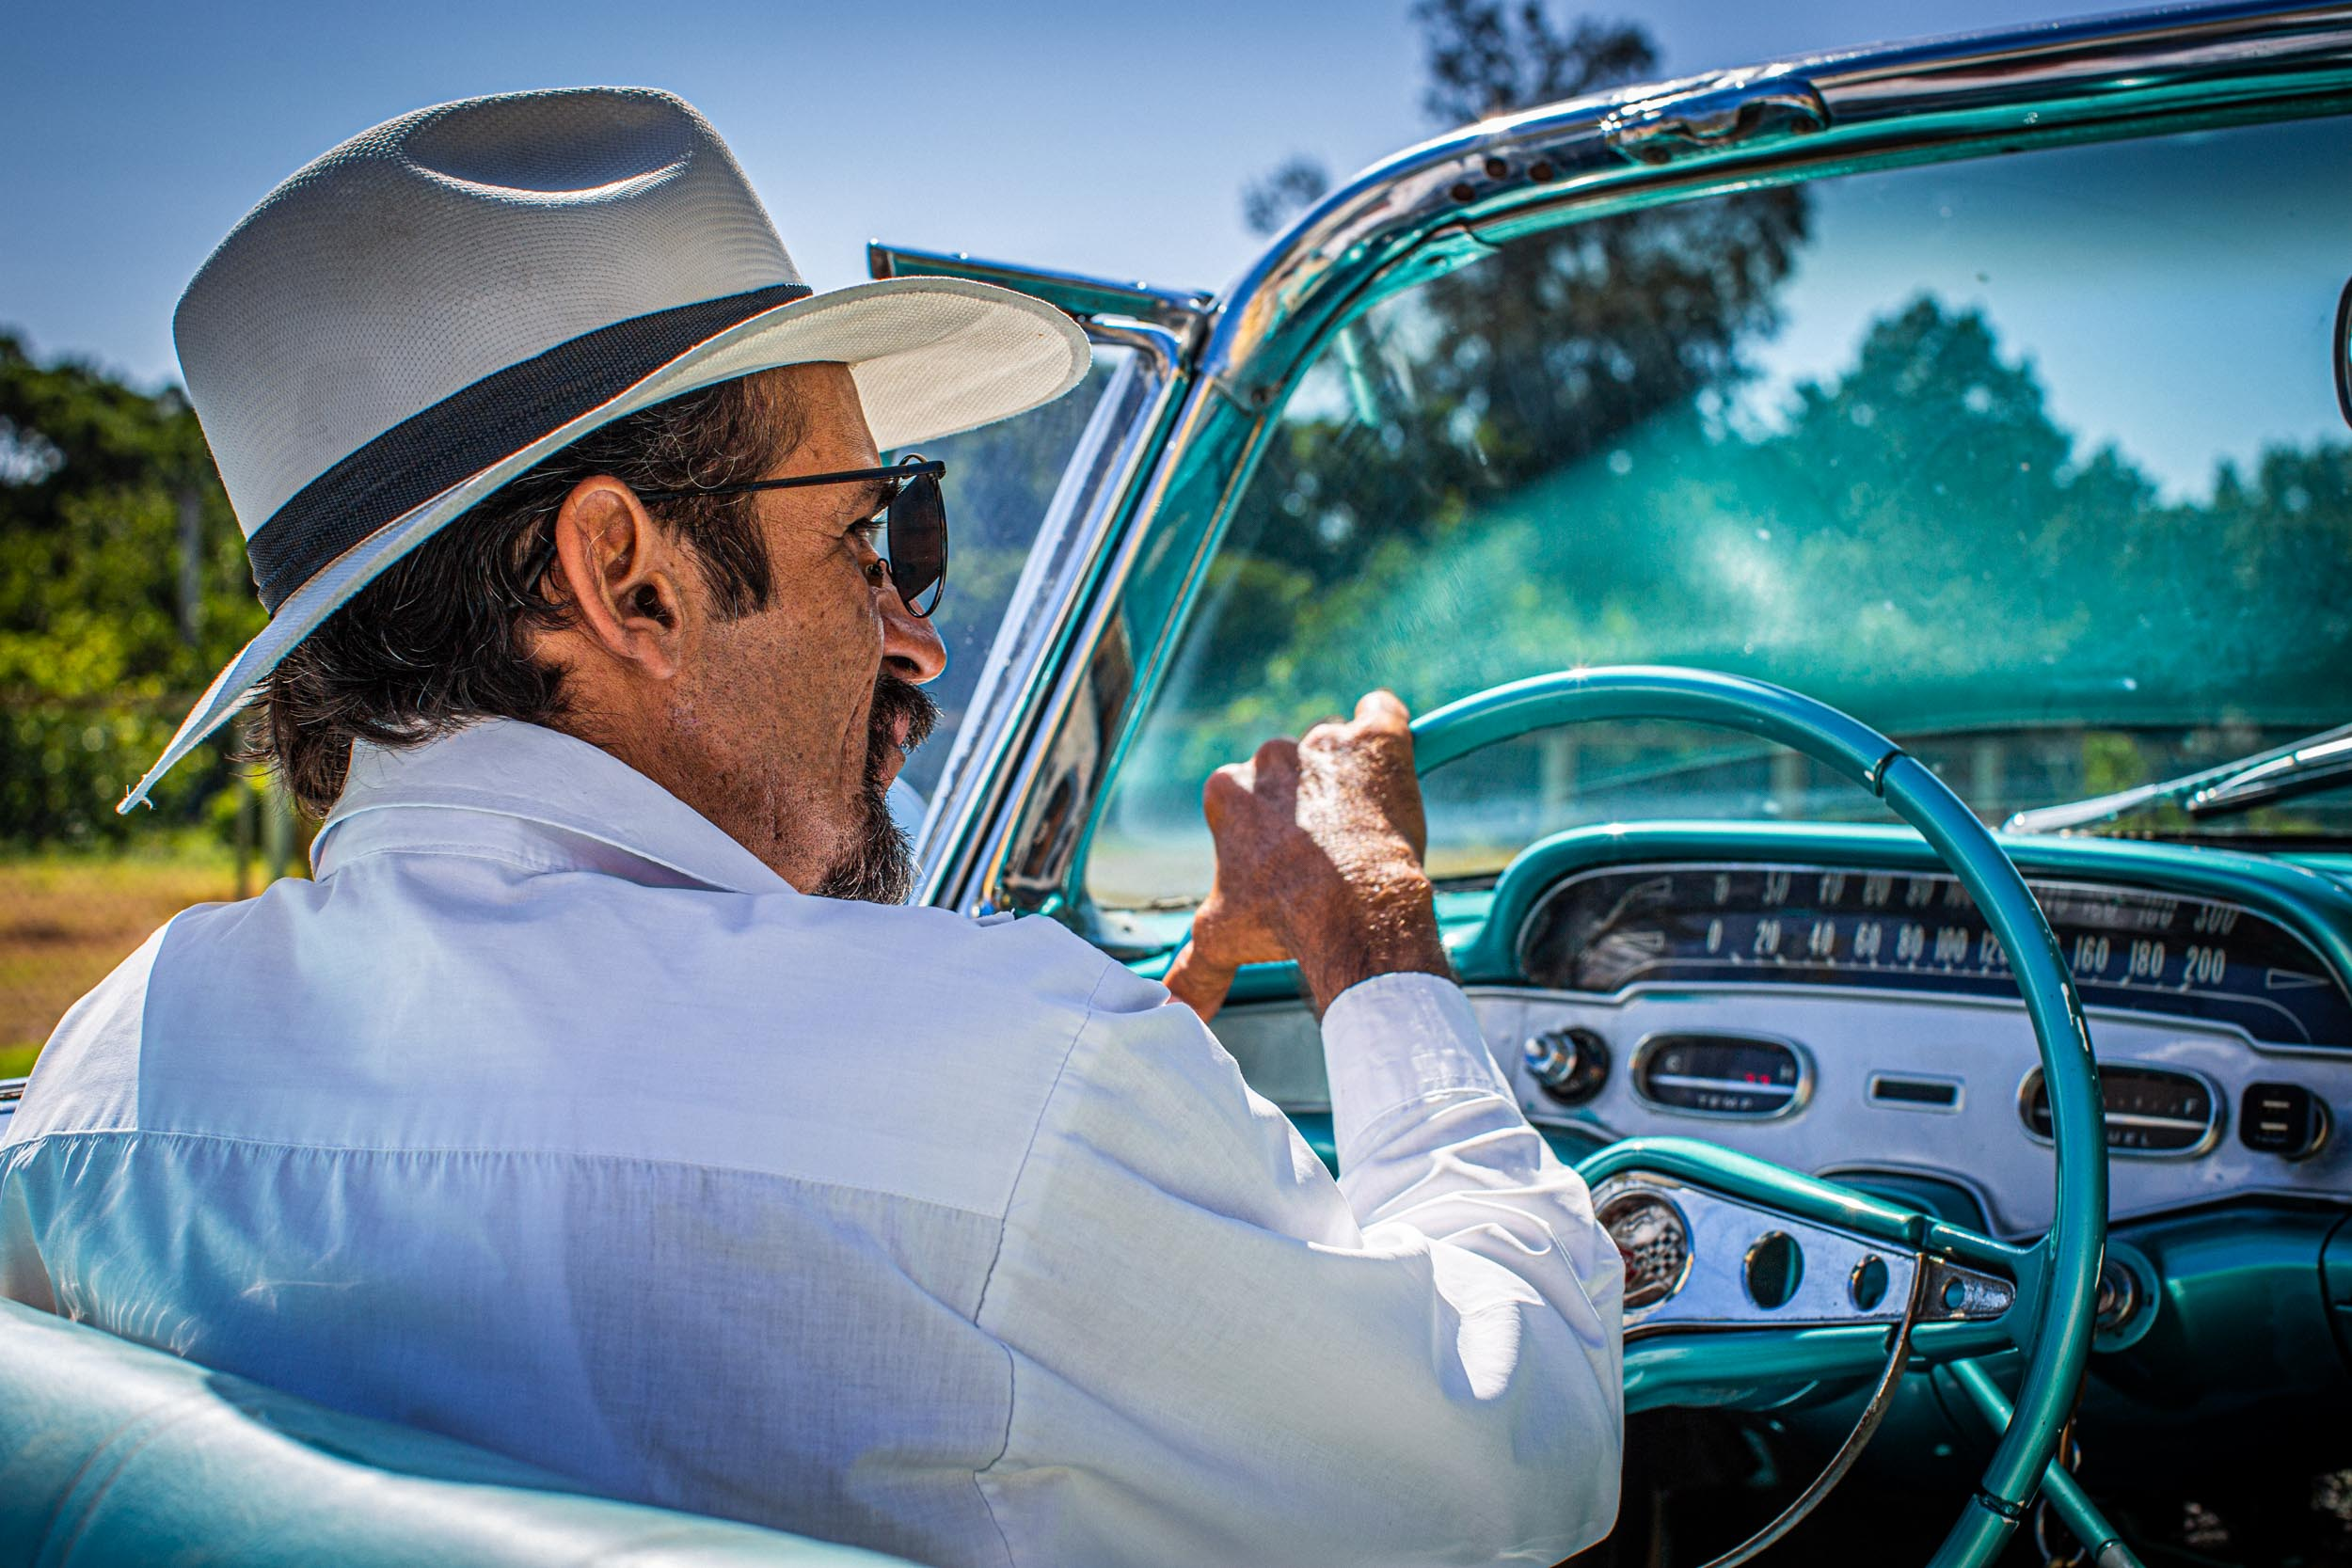 Raul in his 59 Chevrolet Impala